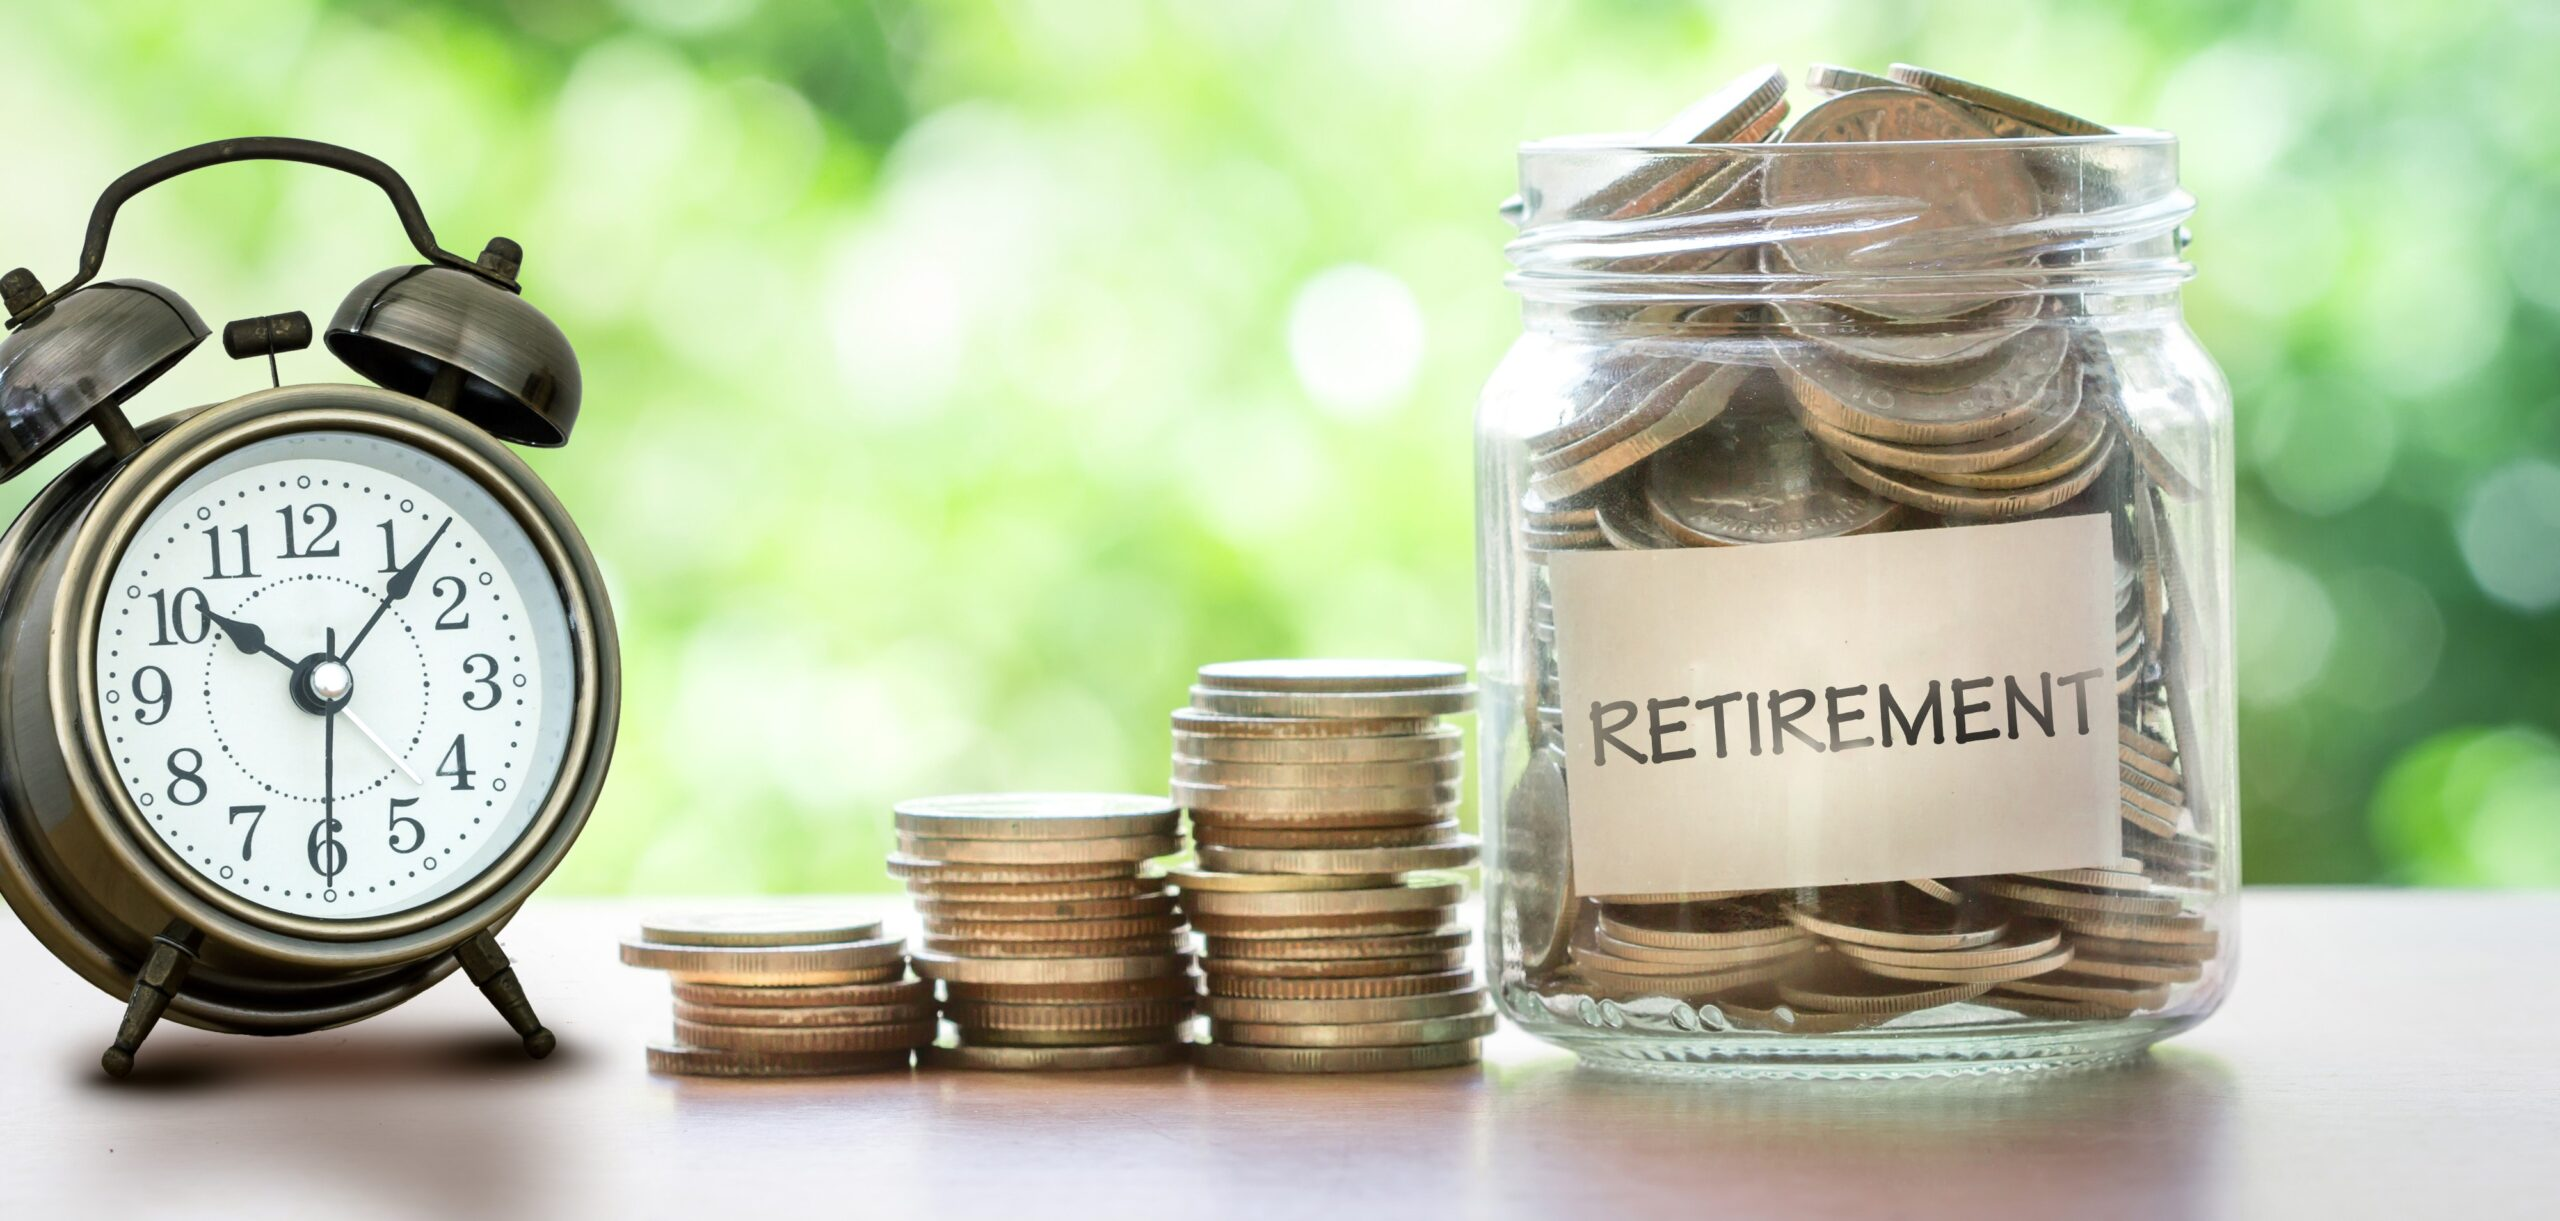 When Is It Time to Retire?